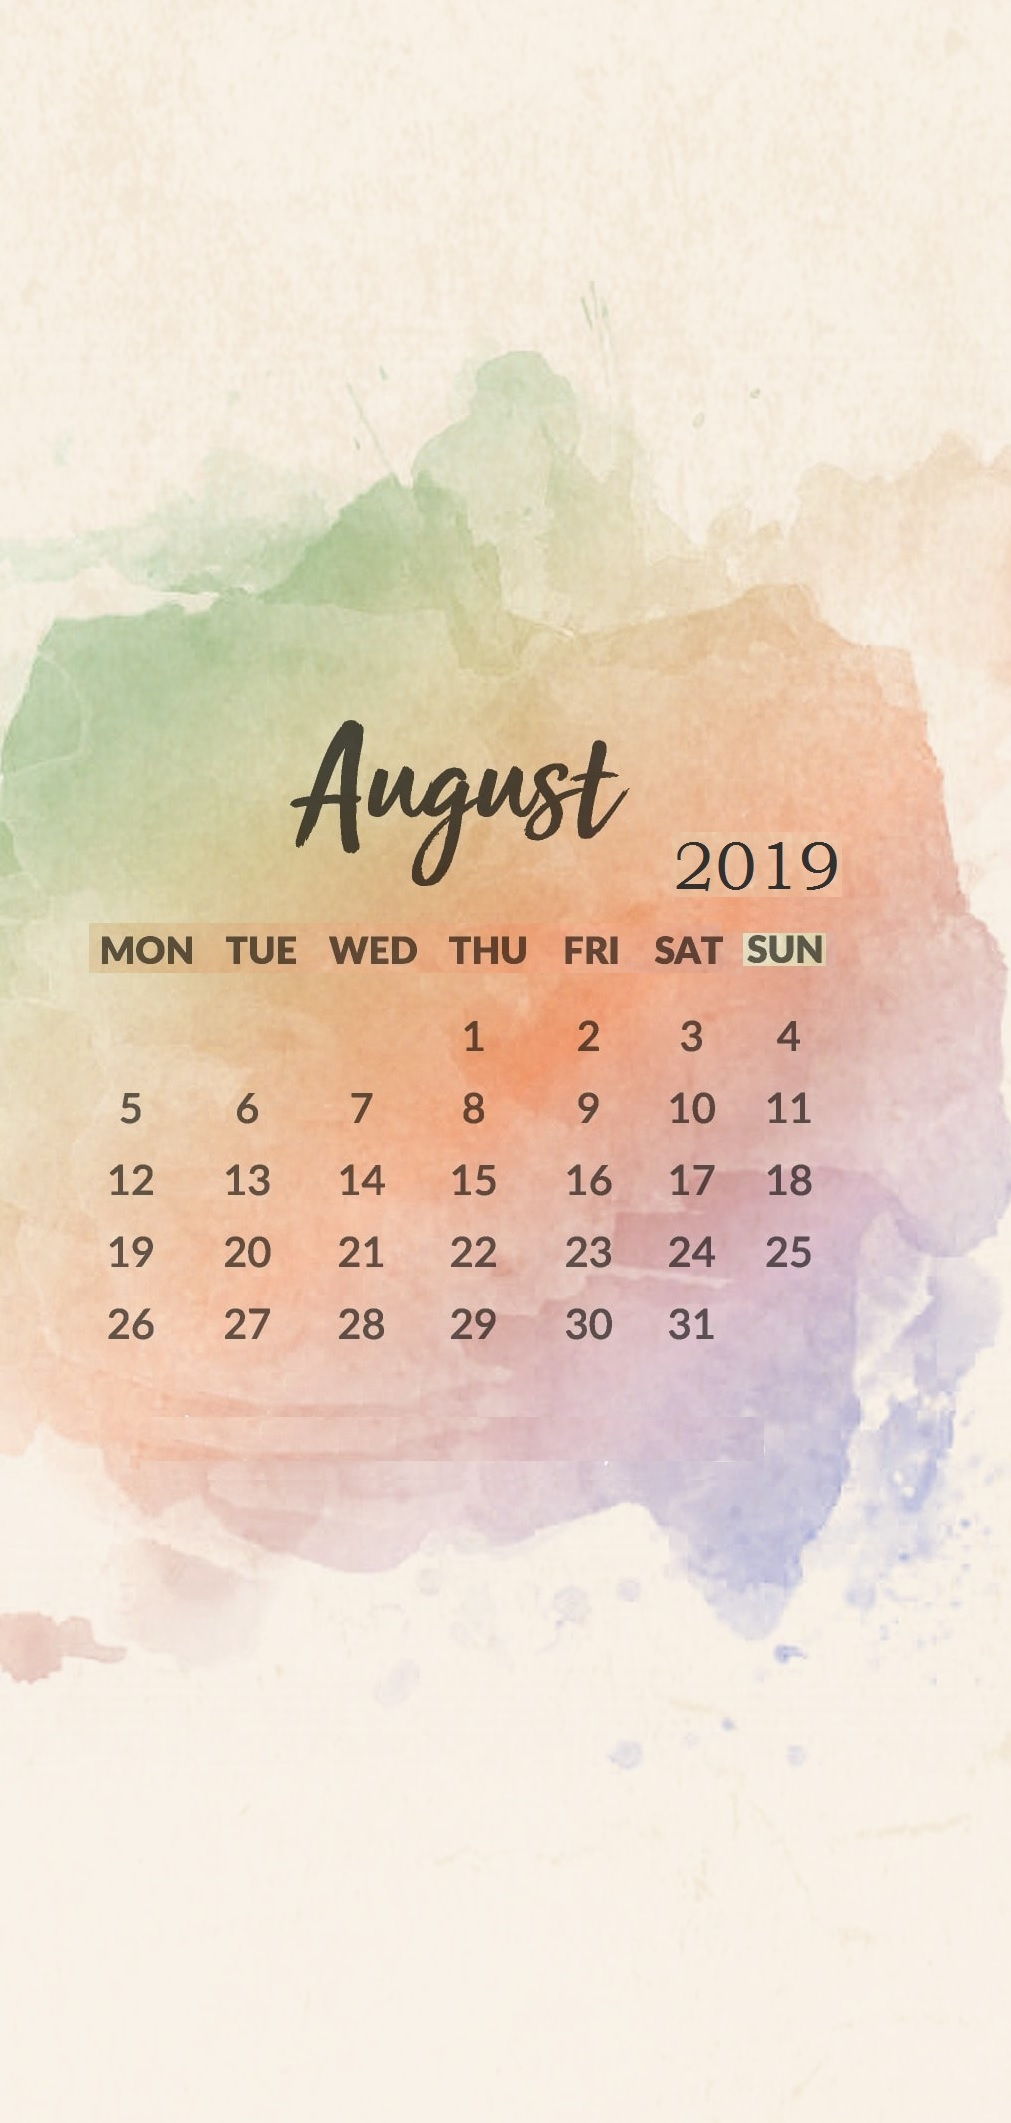 Watercolor August 2019 iPhone Calendar